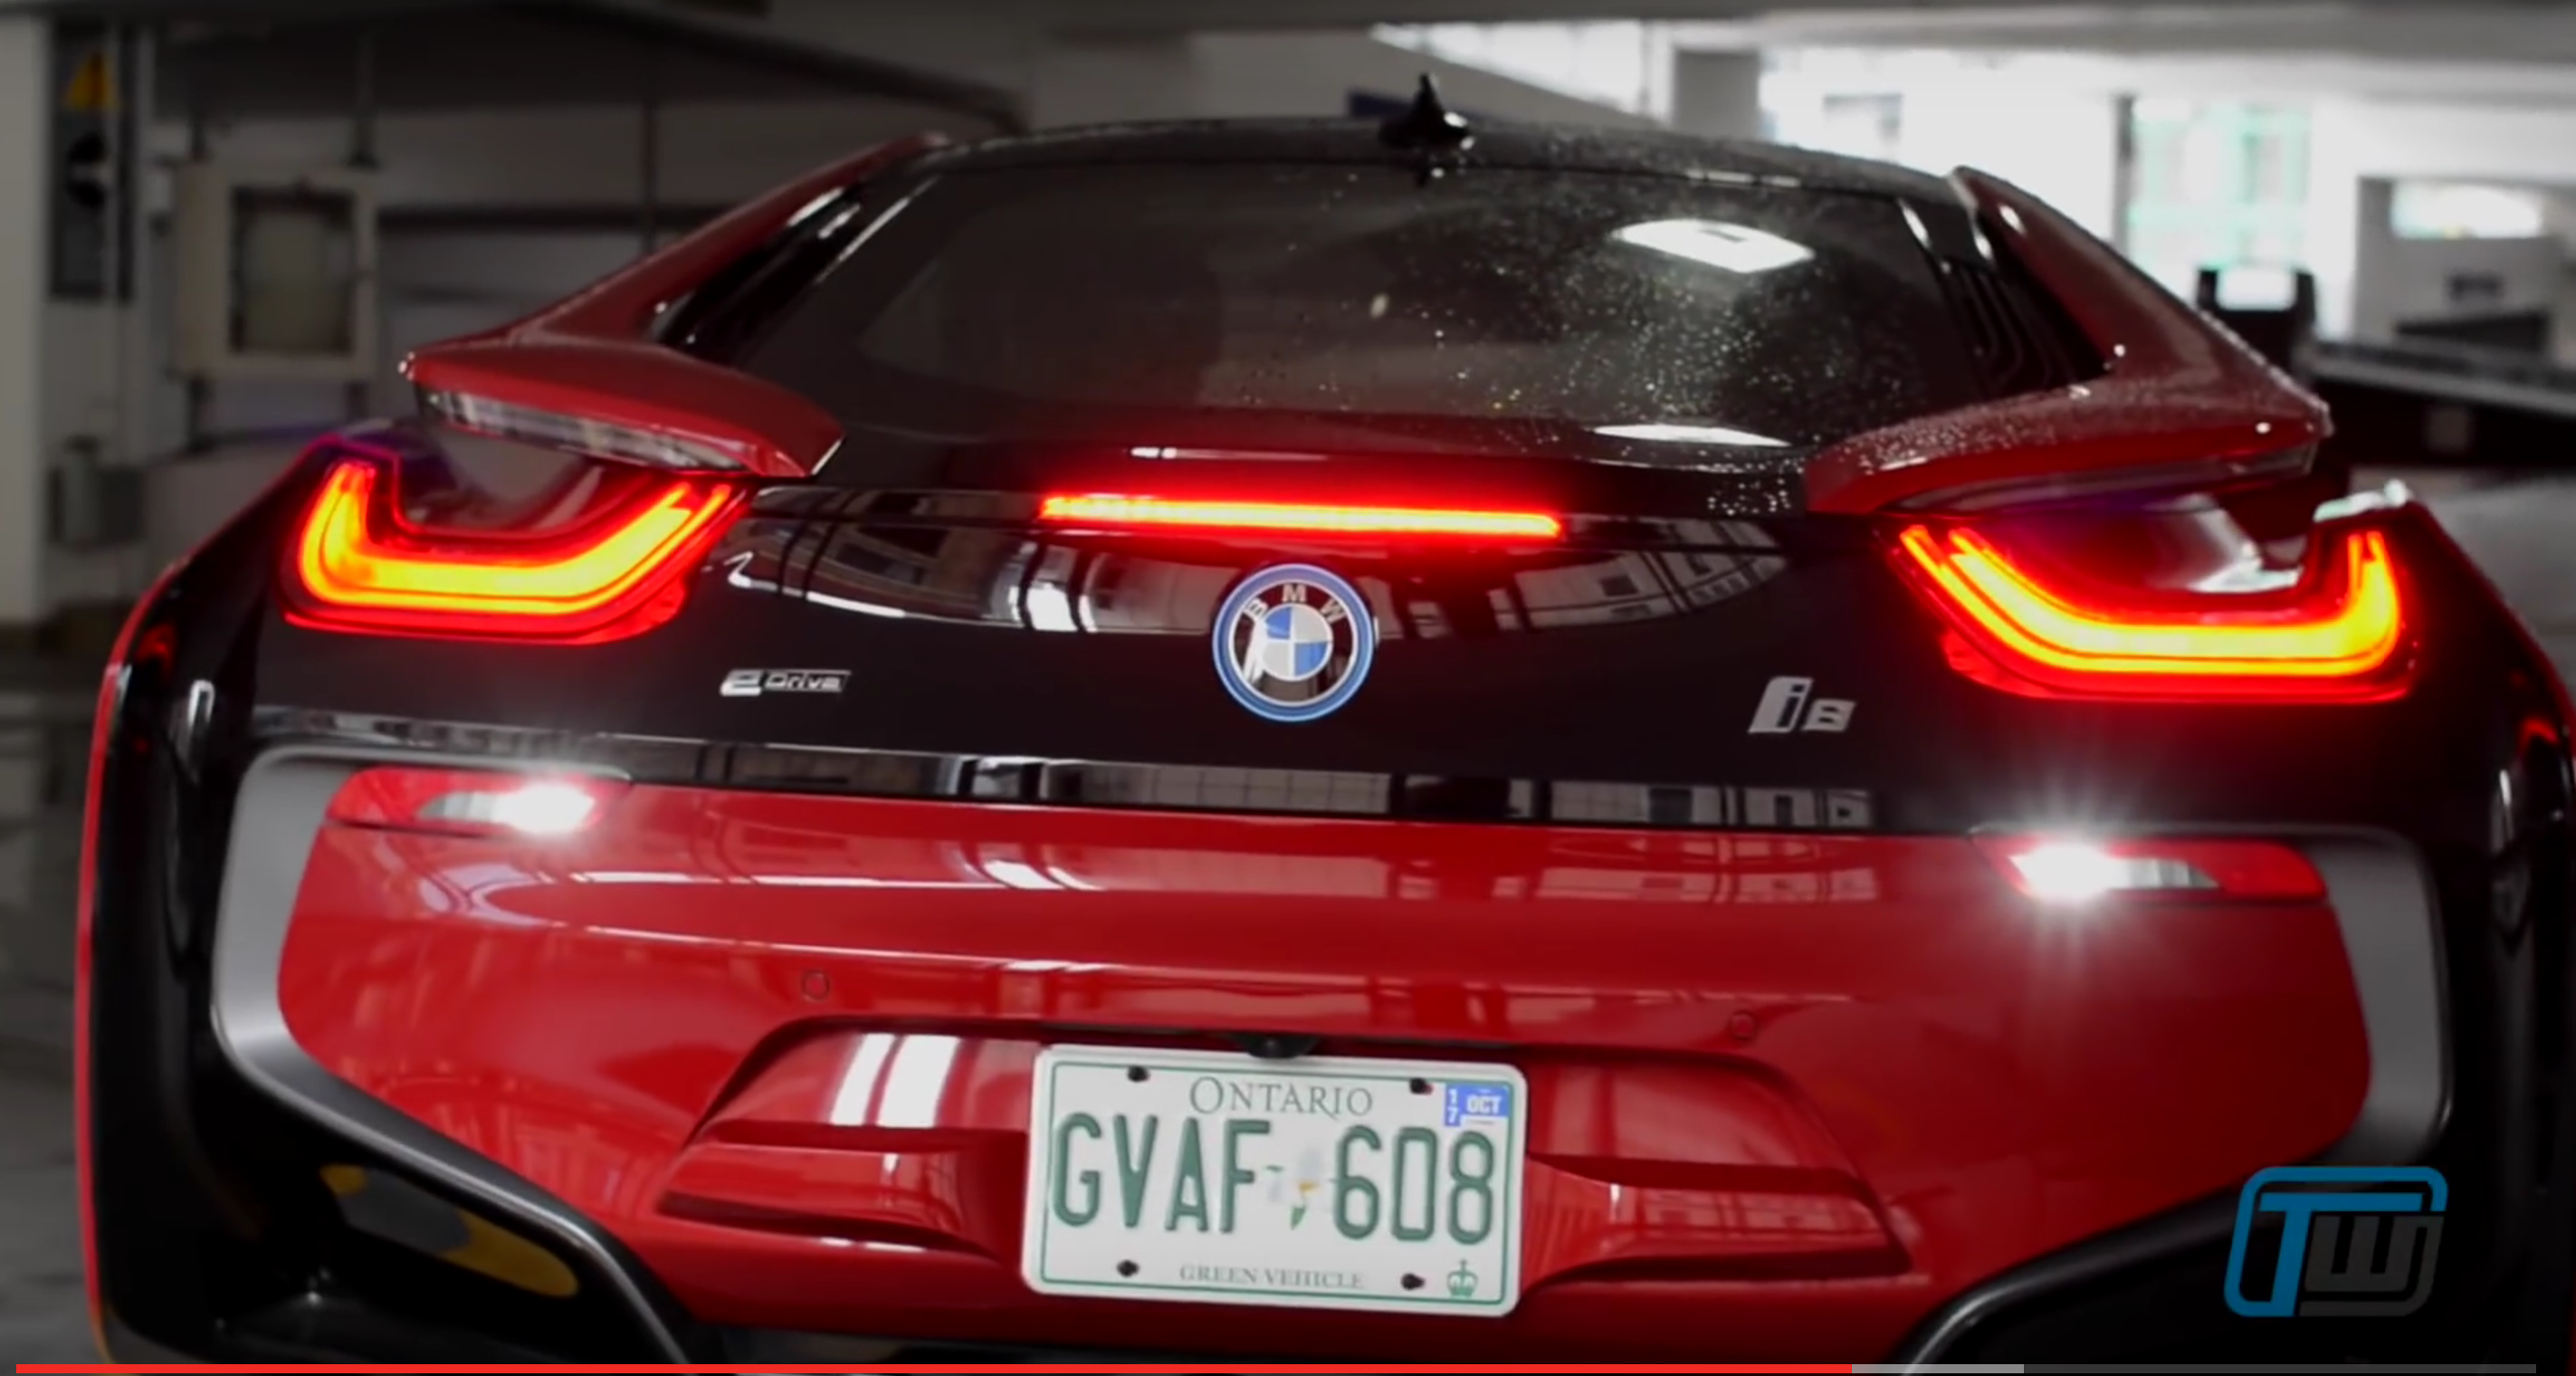 2017 Bmw I8 Protonic Red Edition Plug In Hybrid Review Trackworthy